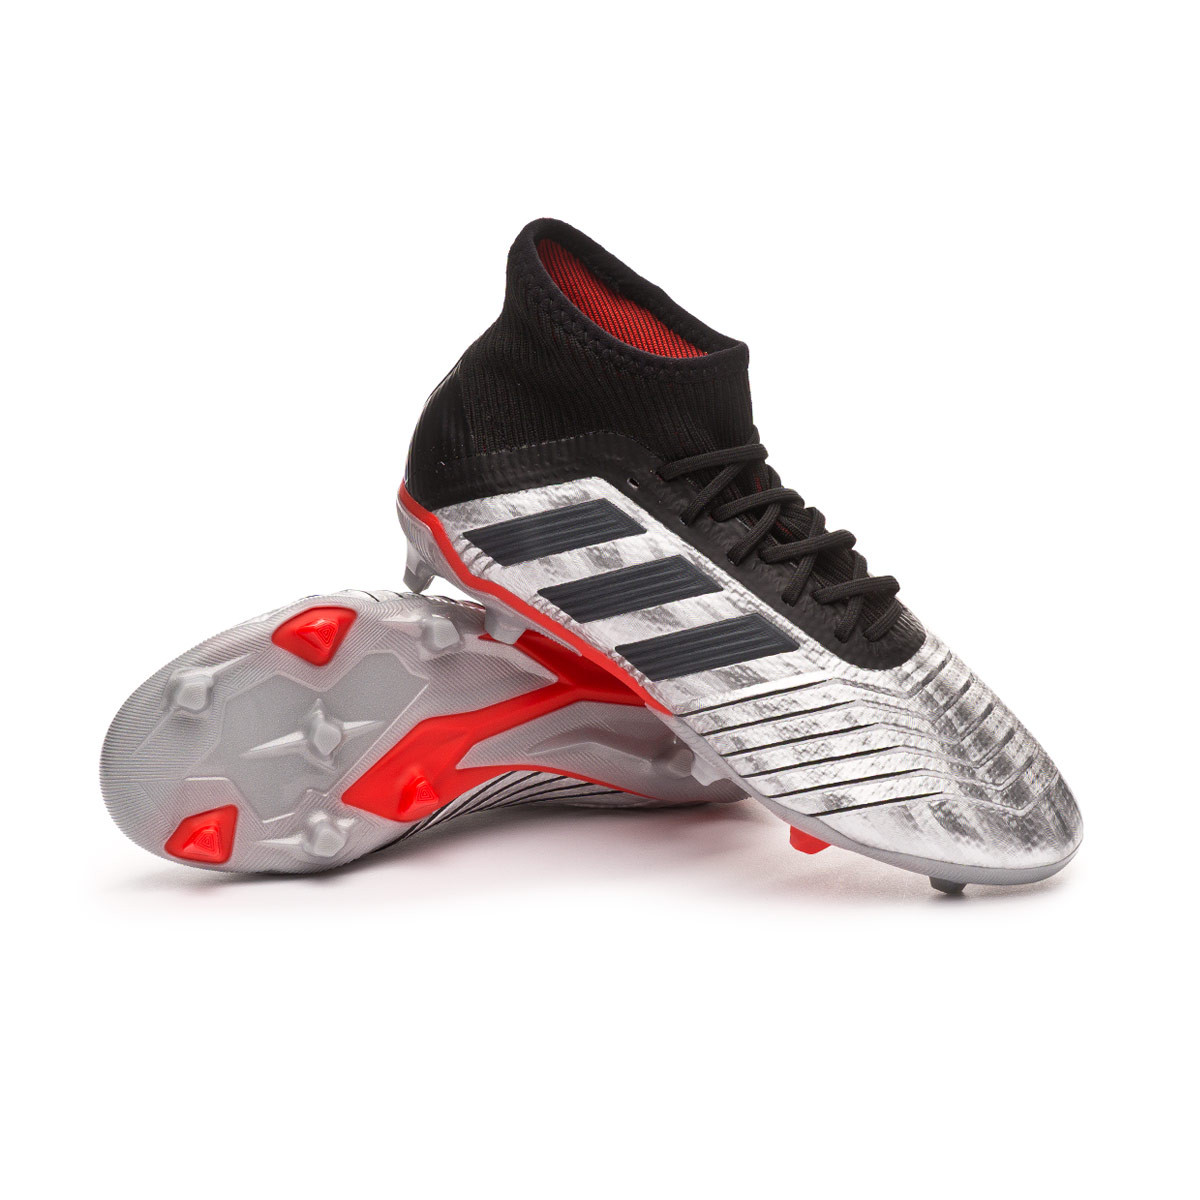 Bota Predator 19.1 FG Niño Silver metallic Core black Hi red